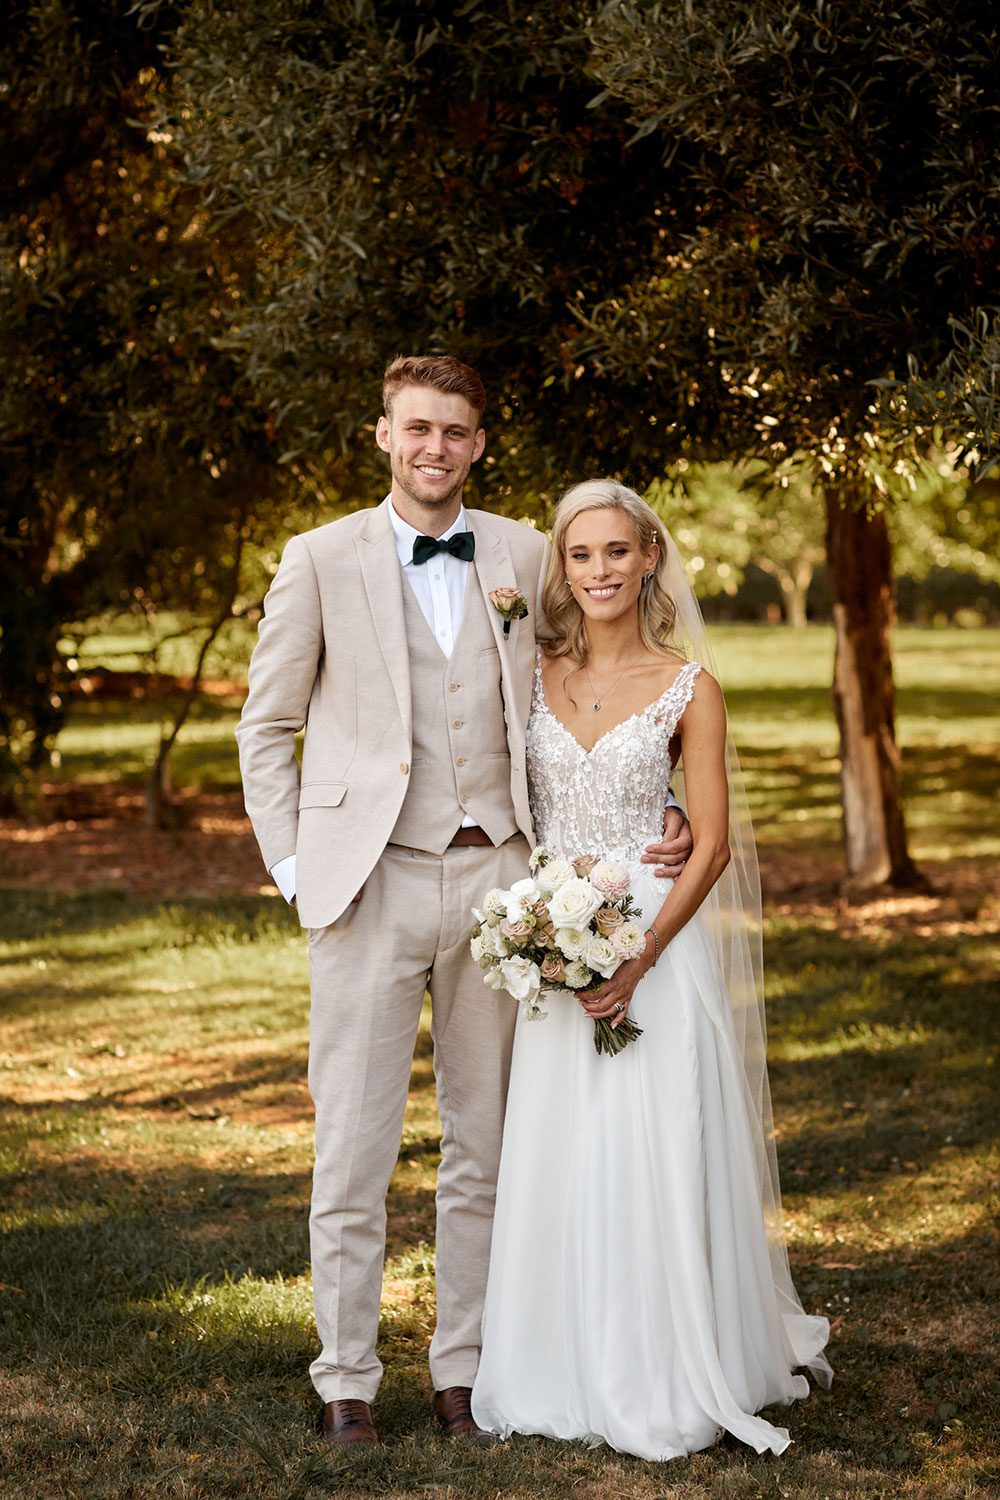 Bride wearing bespoke gown made of silk chiffon with delicate flower lace bodice by Vinka bridal designer Auckland - full length with groom outside